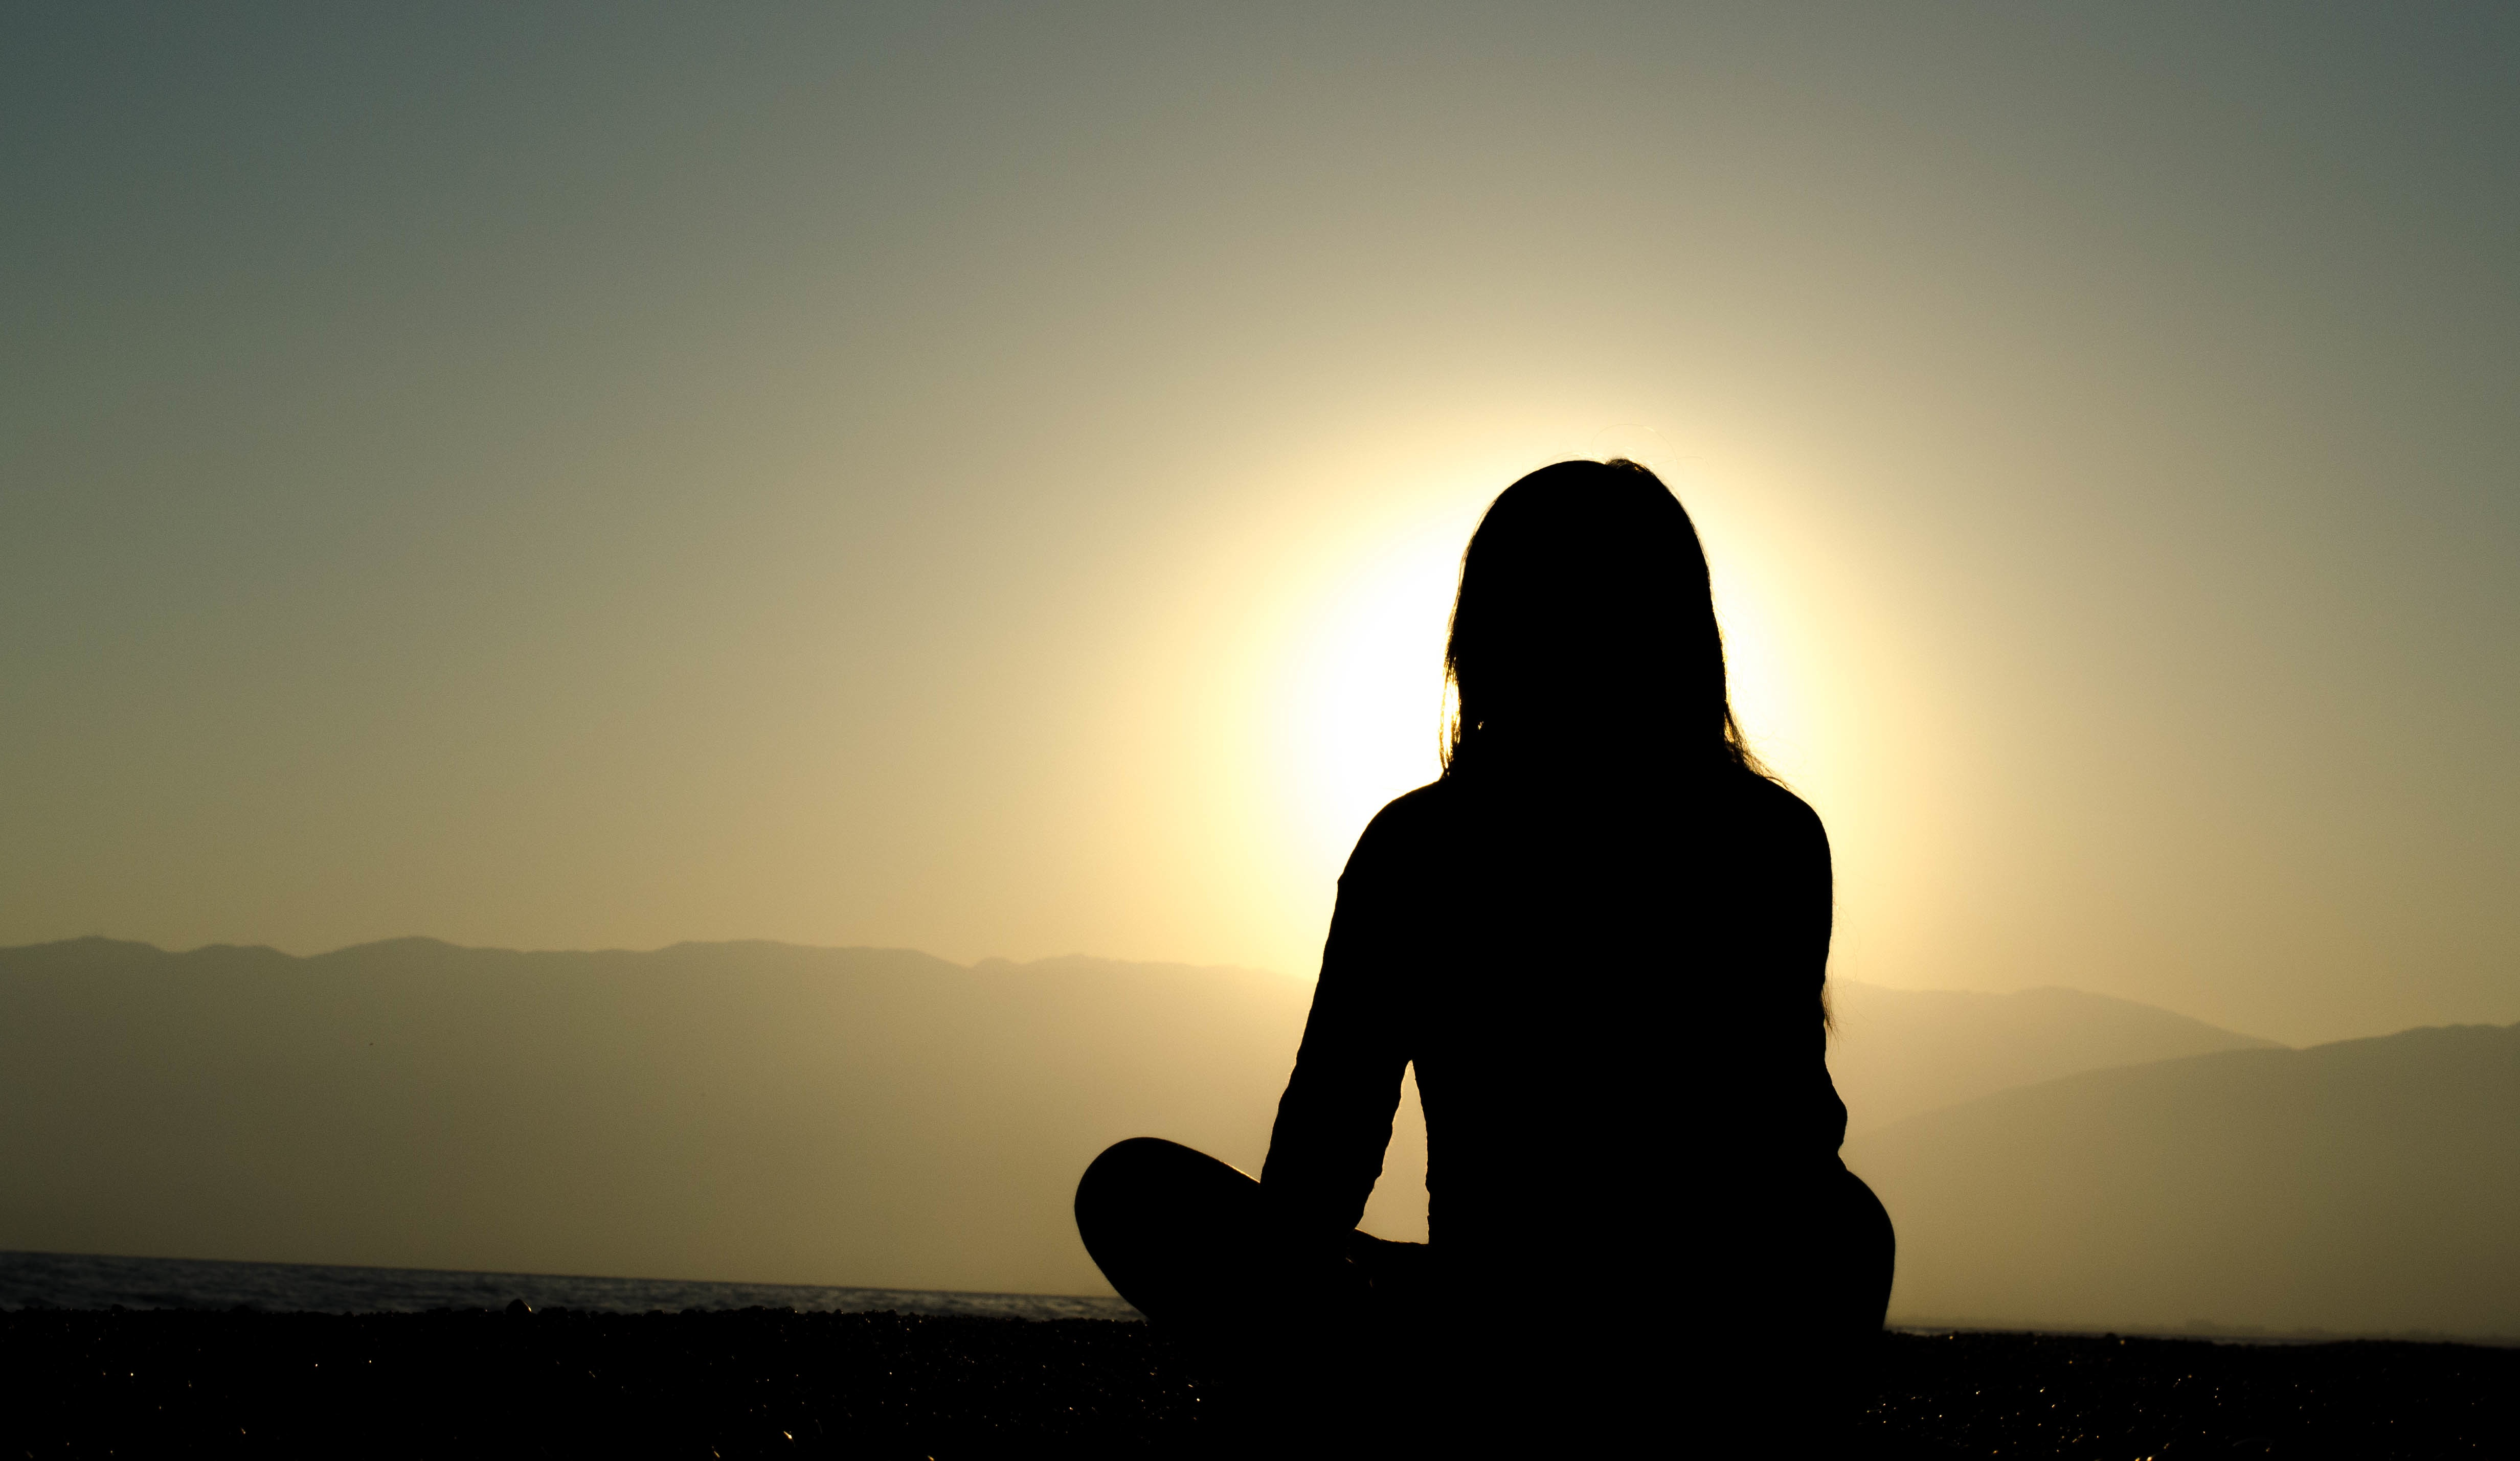 Woman Meditating - psychiatric services in Tucson